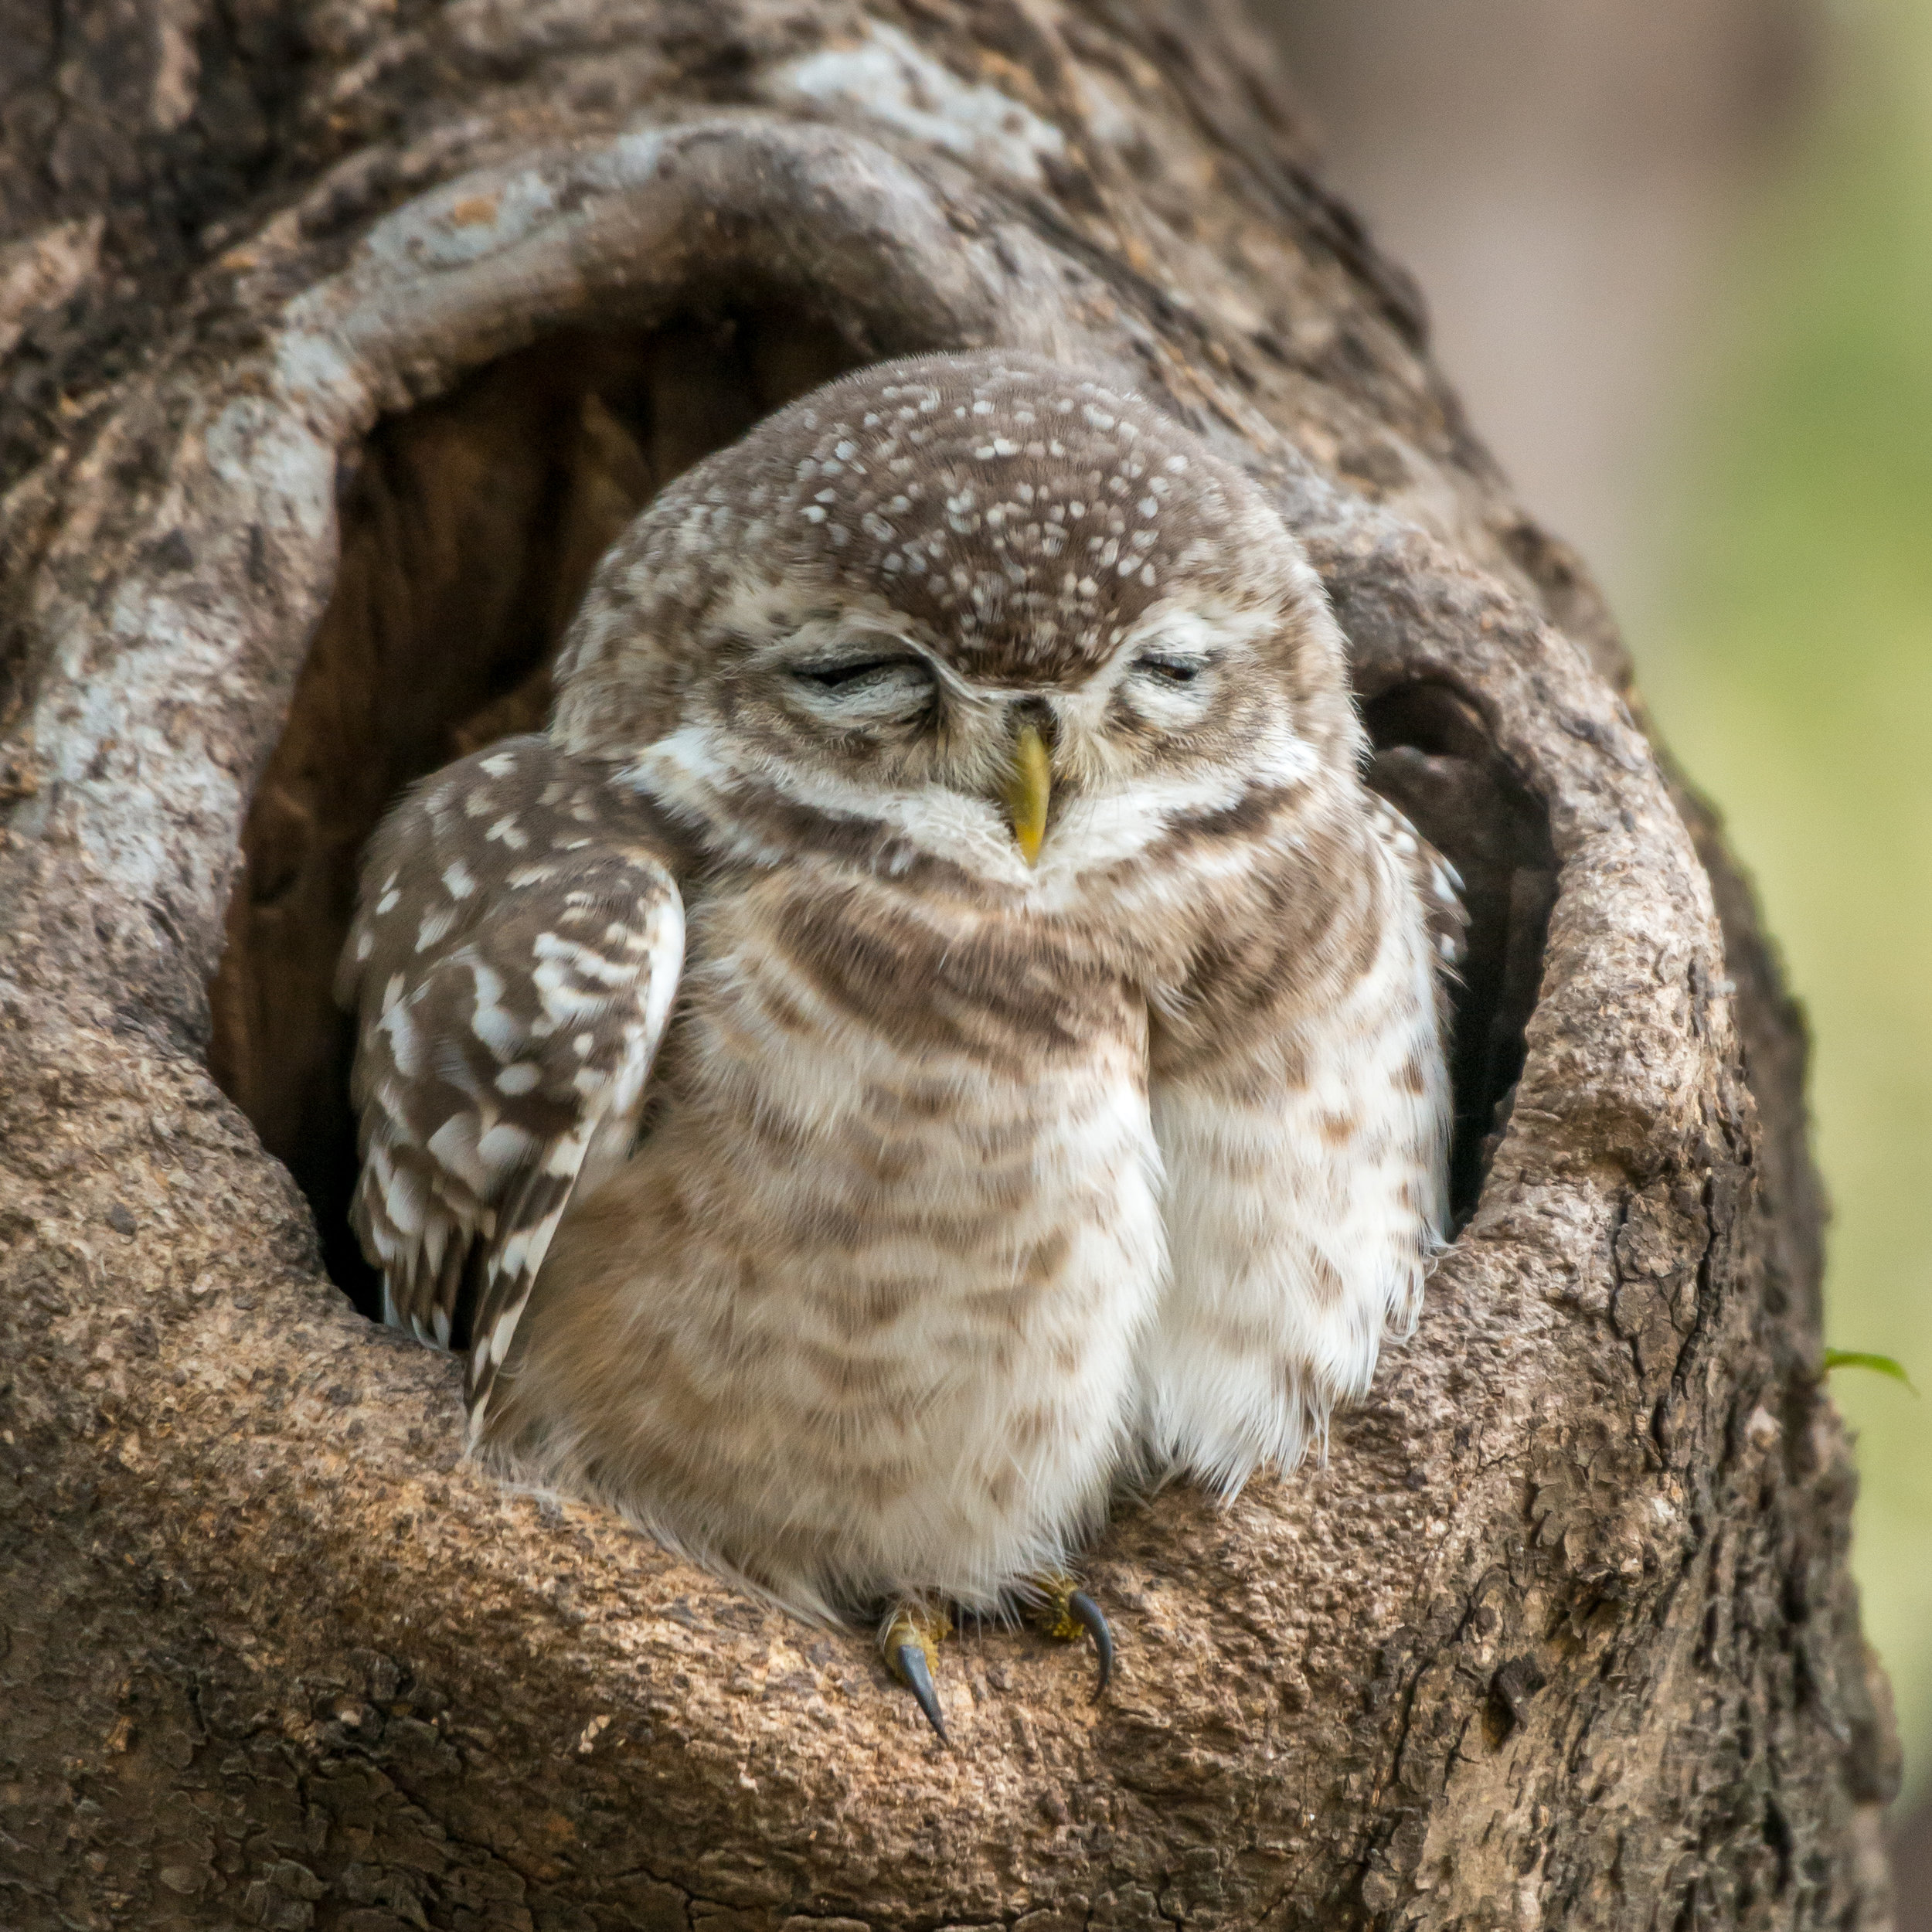 Baby spotted owlet close-up